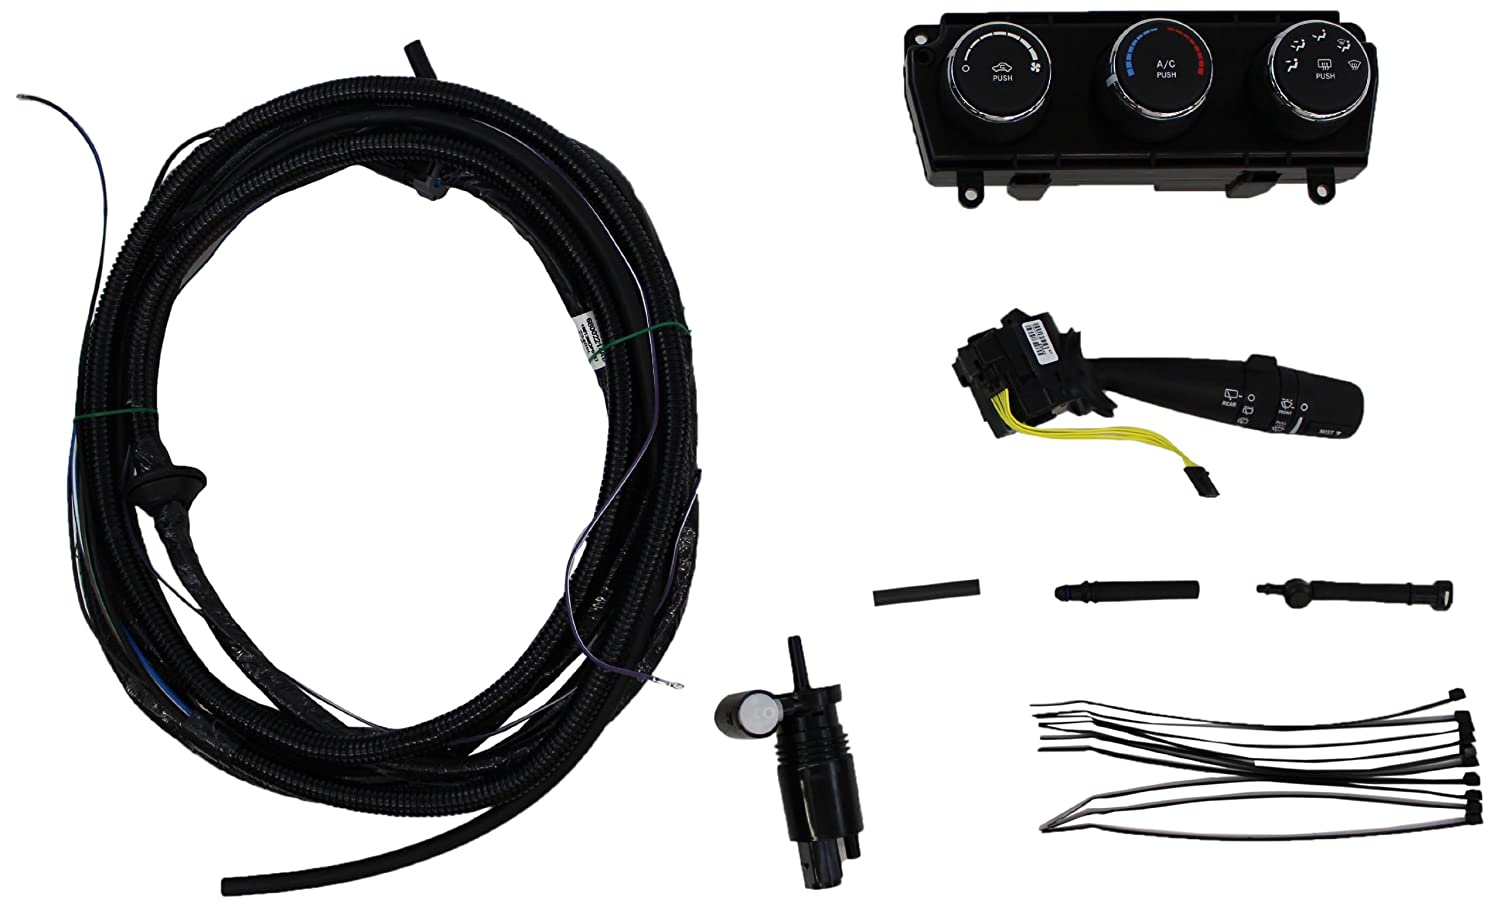 amazon com genuine jeep accessories 82212859 hard top wiring kit rh amazon com jeep wrangler hardtop wiring adapter harness jeep tj hardtop wiring harness